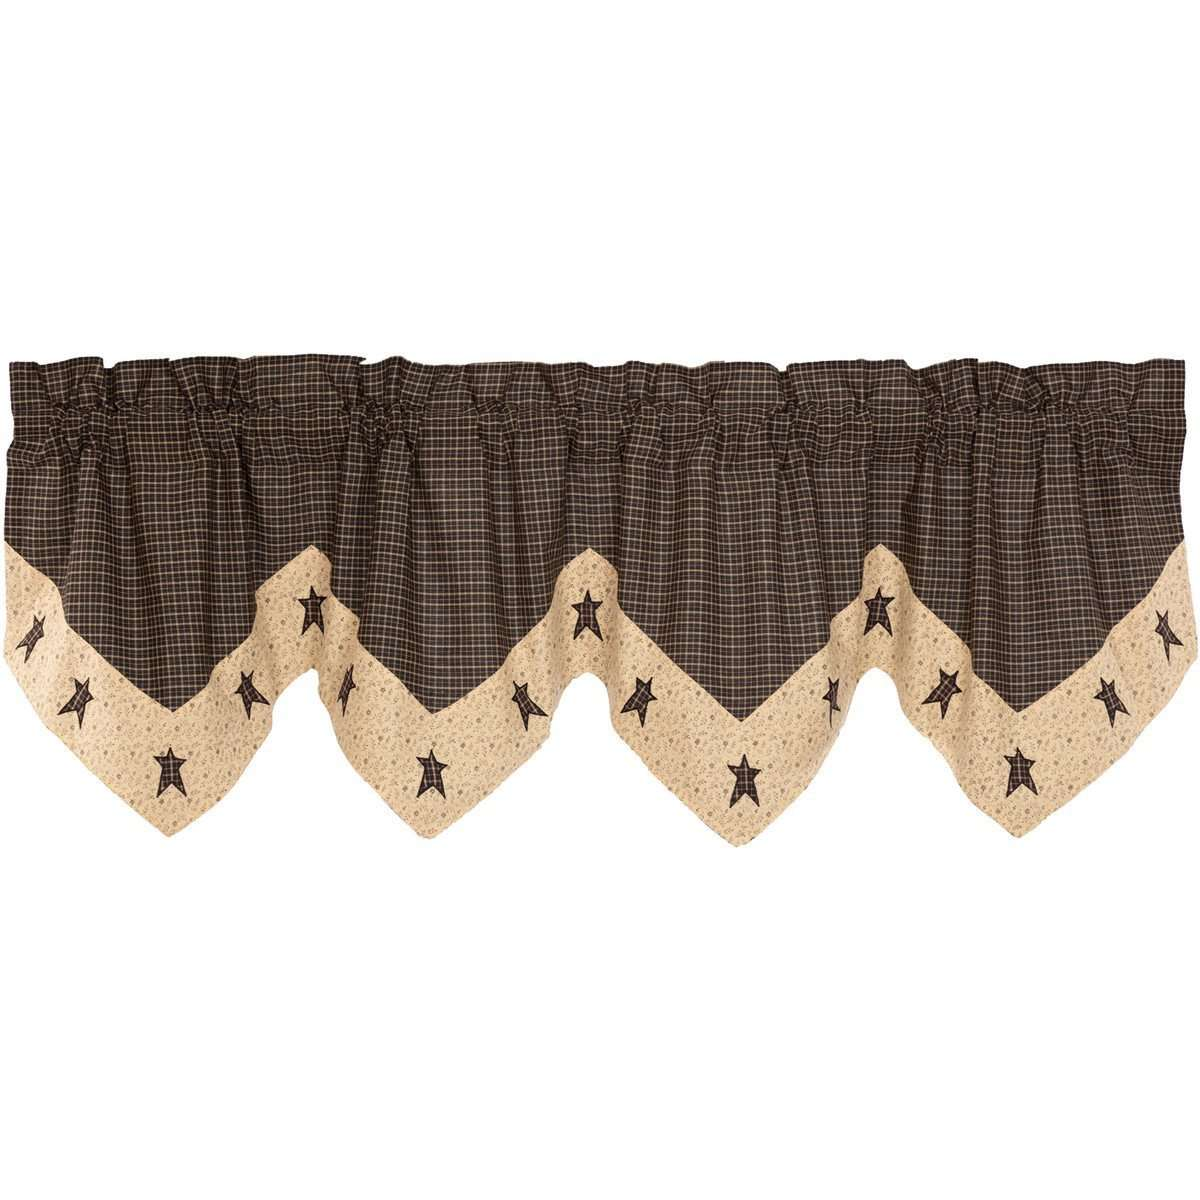 Kettle Grove Star Valance Curtain Country Black VHC Brands - The Fox Decor